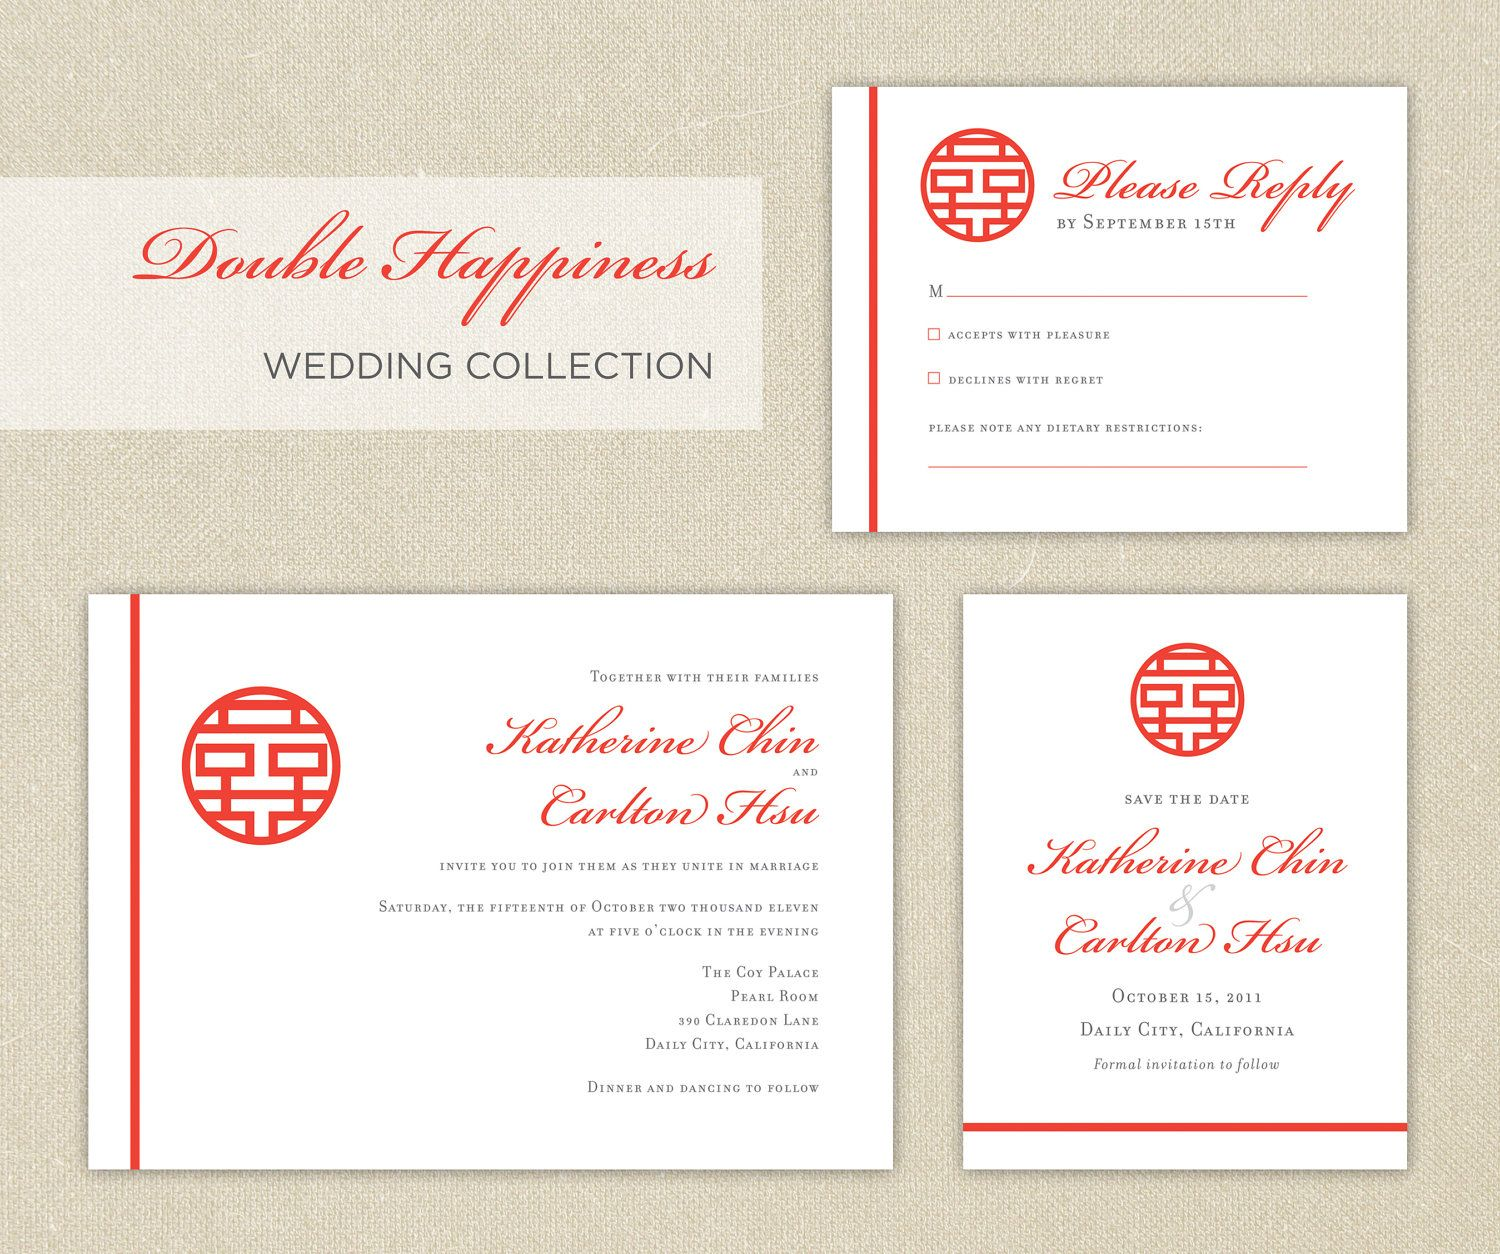 Wedding Invitations: Red Double Happiness Chinese Wedding Collection ...